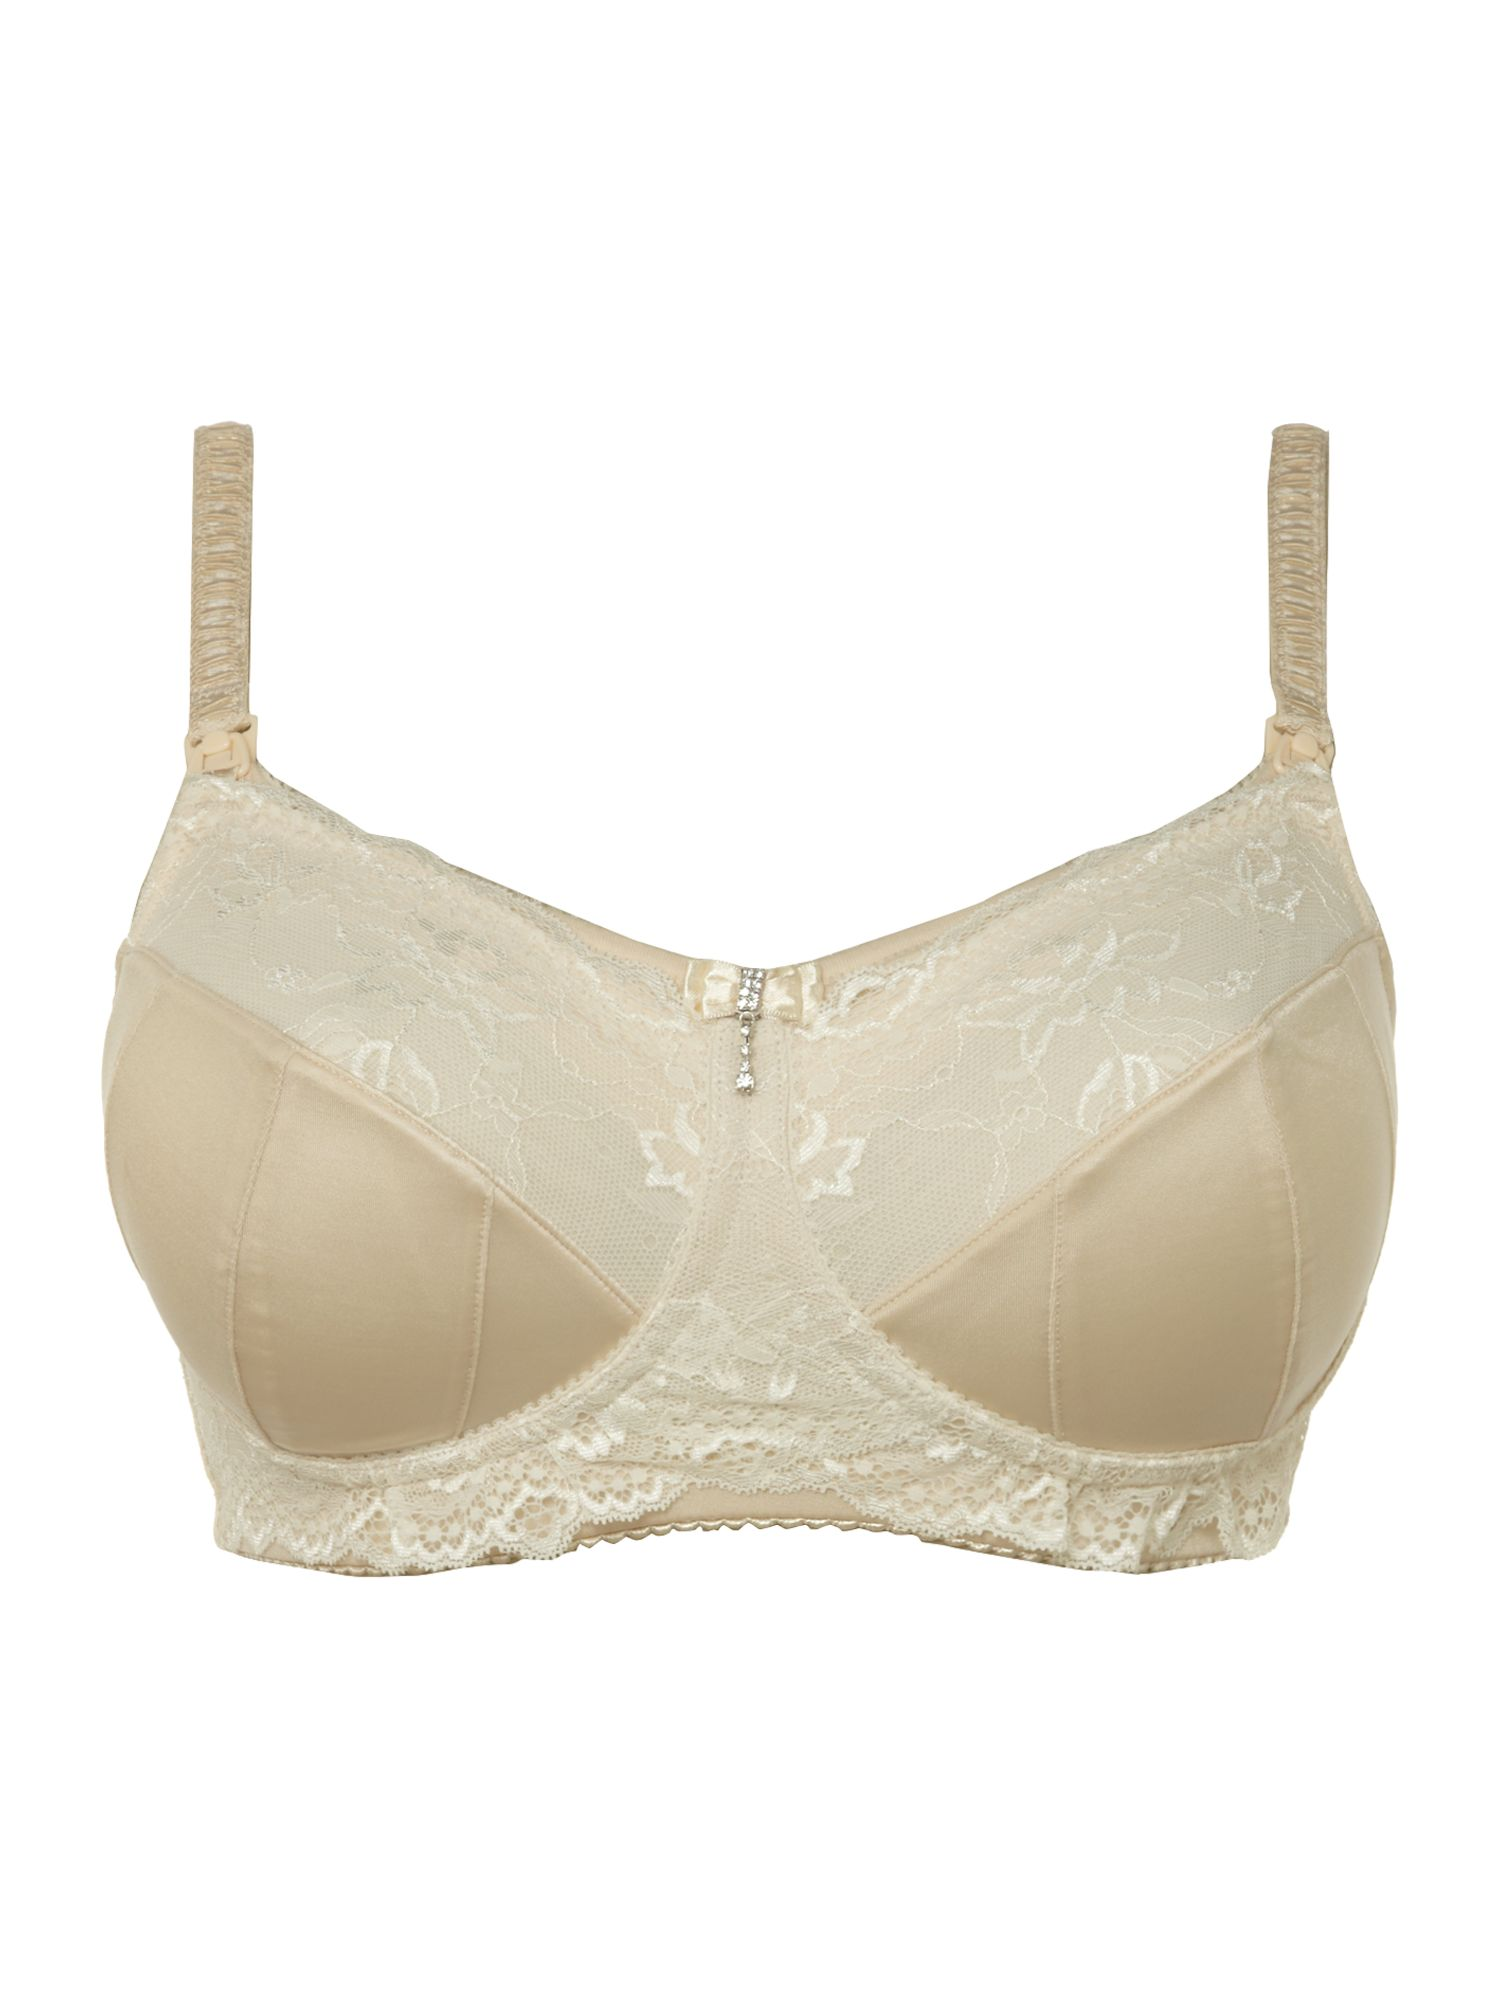 Luminous maternity bra